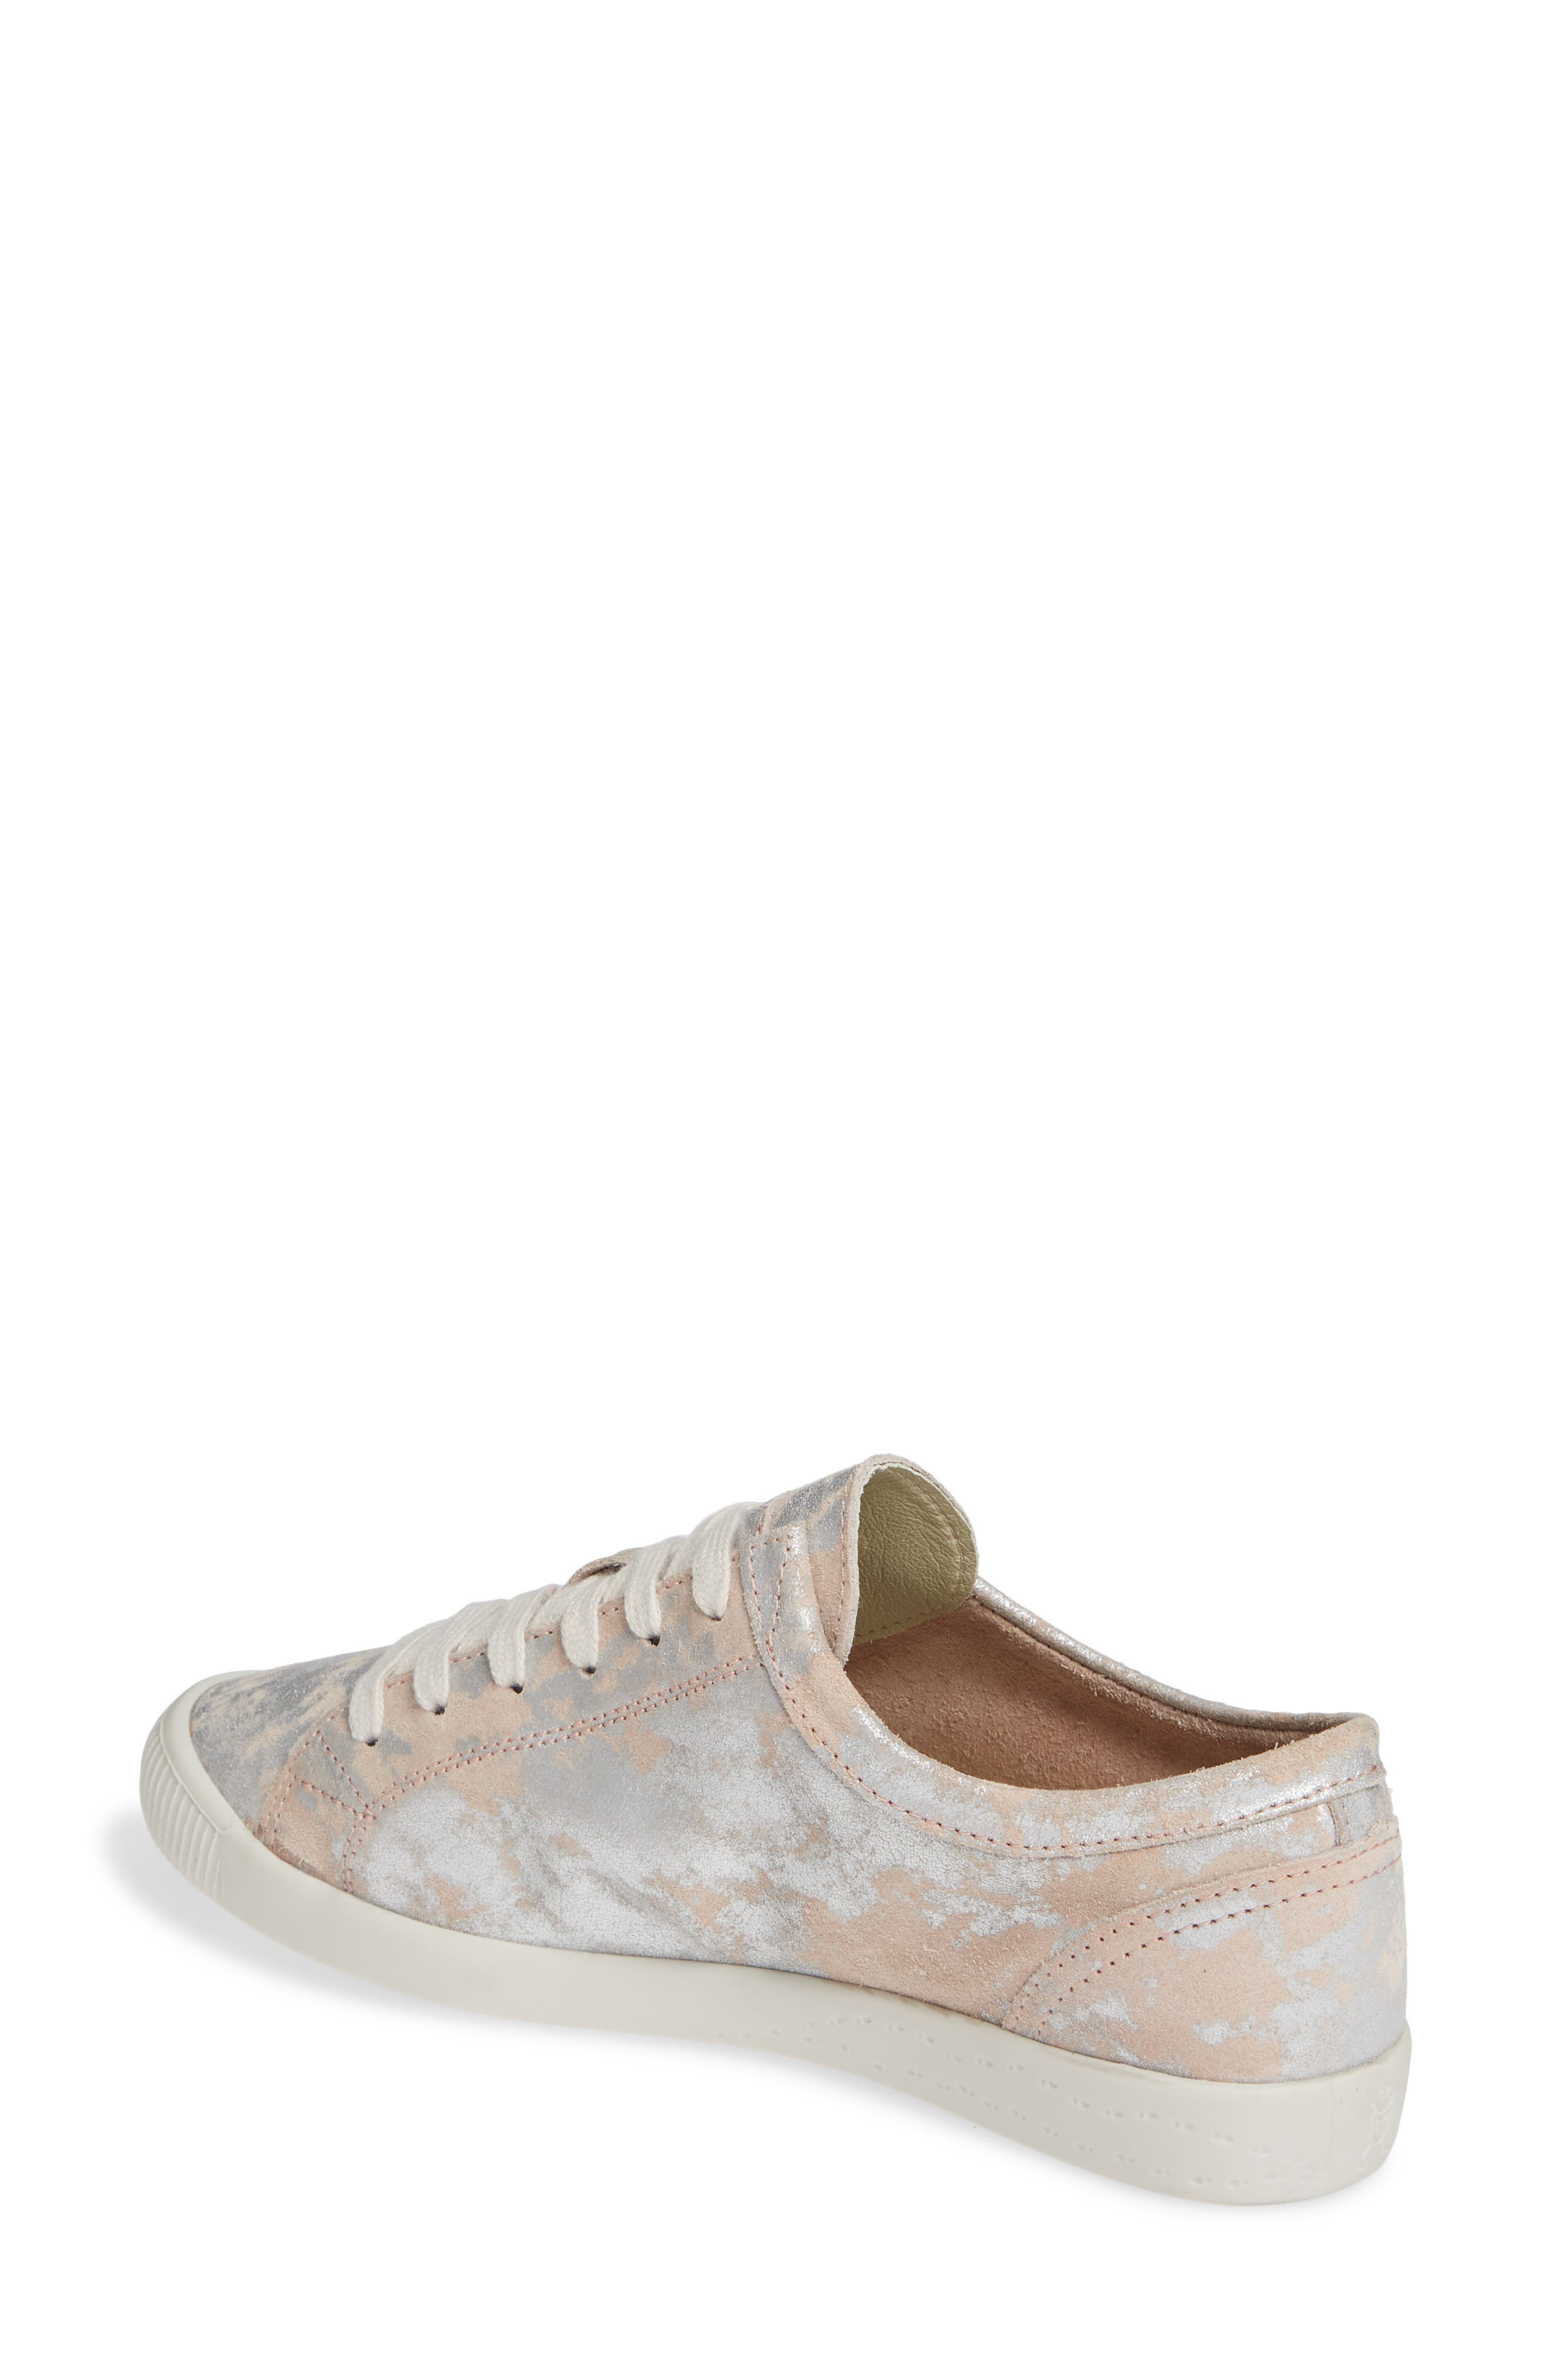 Isla Distressed Sneaker,                             Alternate thumbnail 2, color,                             ROSE LEATHER